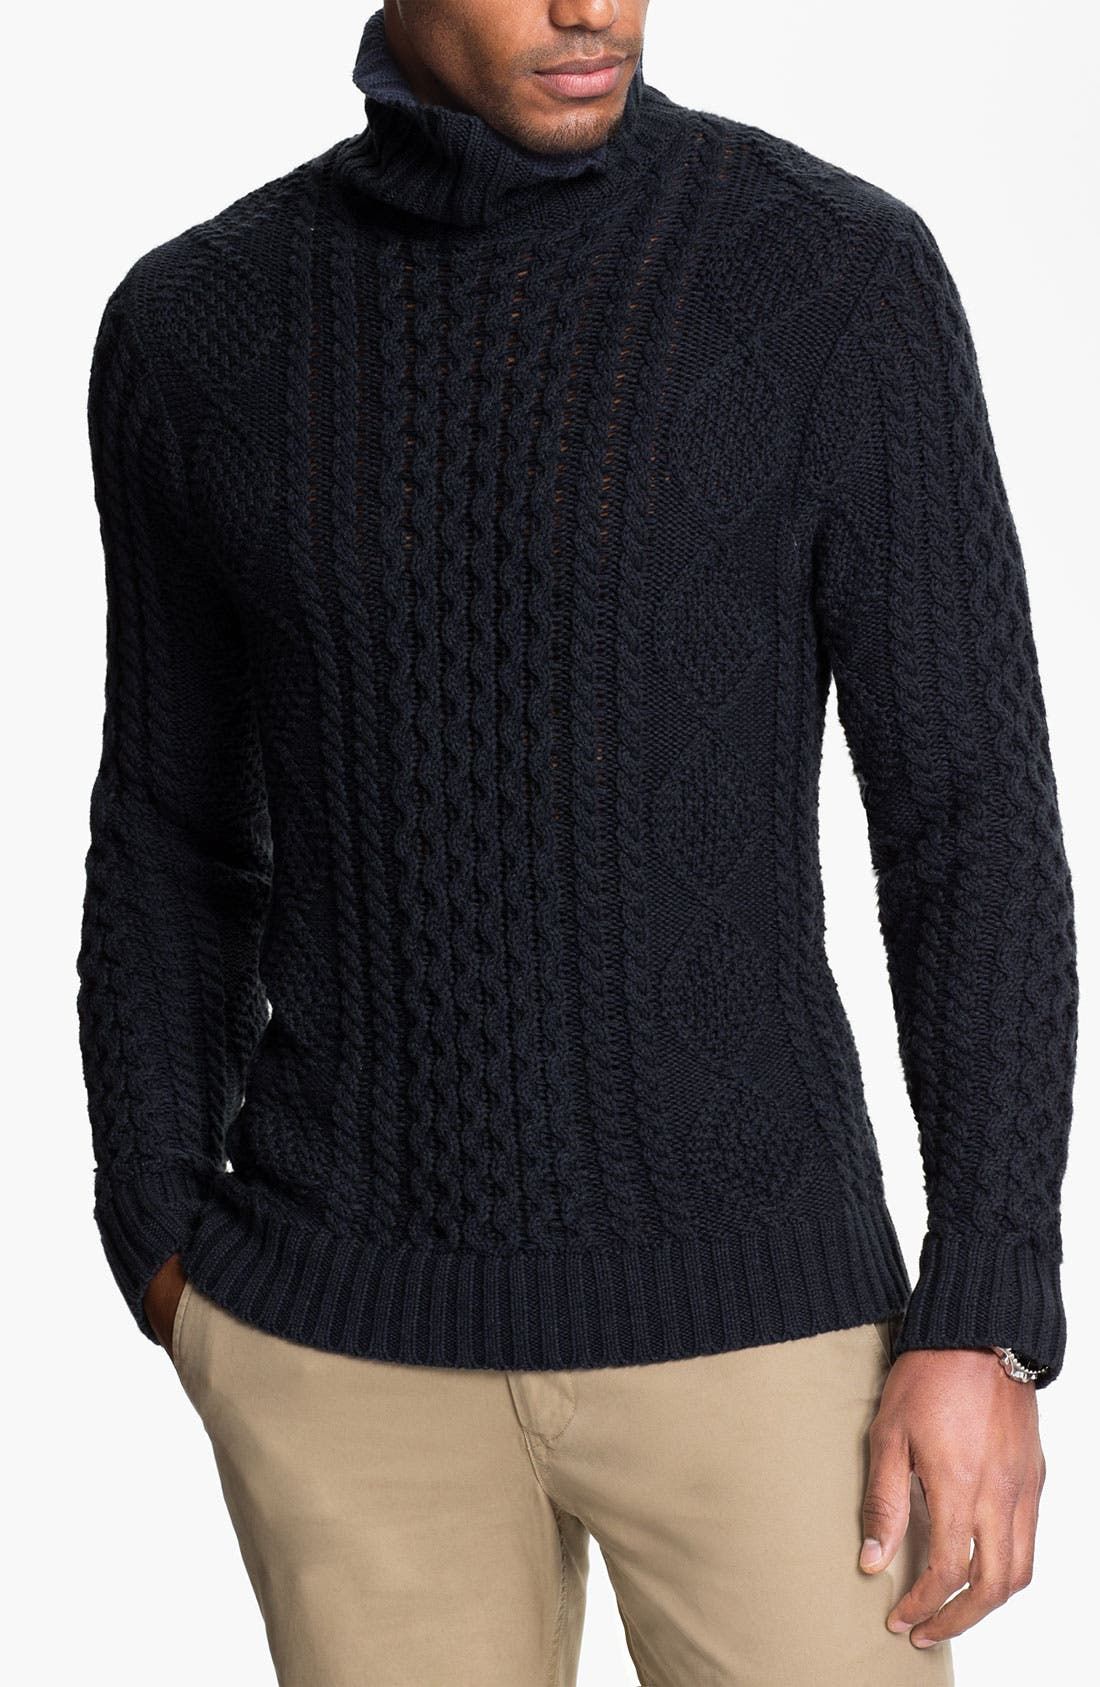 Alternate Image 1 Selected - Wallin & Bros. 'Norwood' Cable Knit Sweater